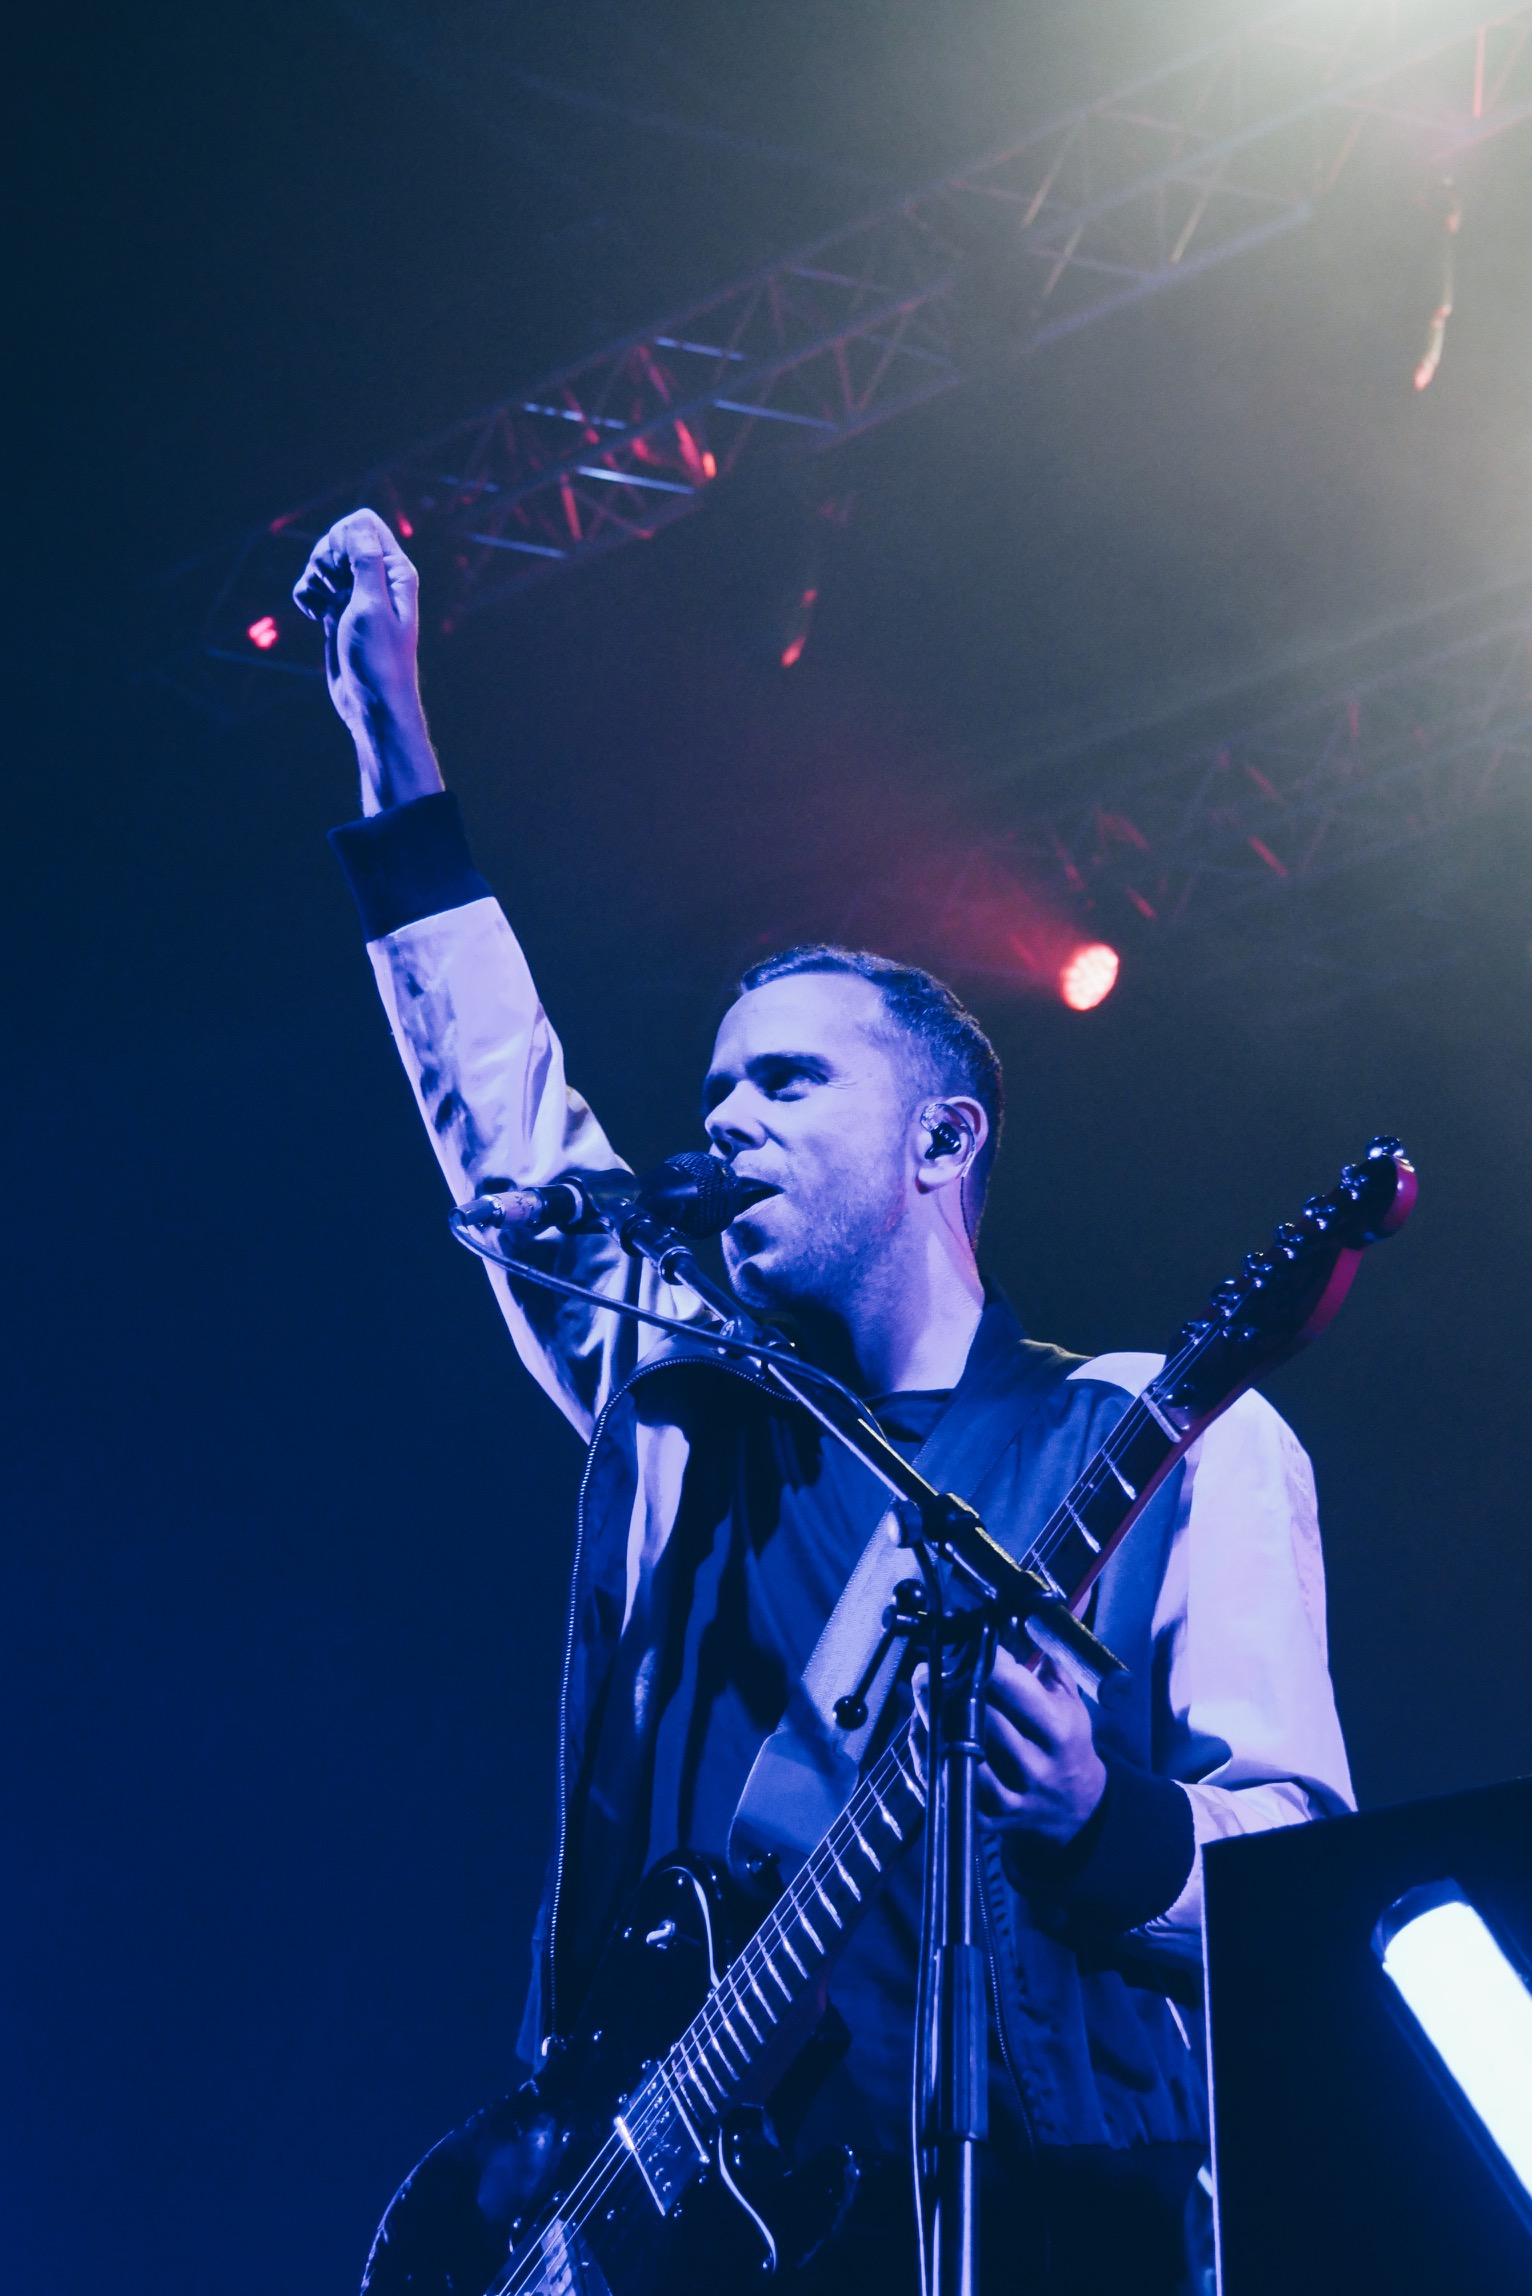 m83-anthony-gonzalez-junk-tour-live-concert-zenith-paris-photo-usofparis-blog